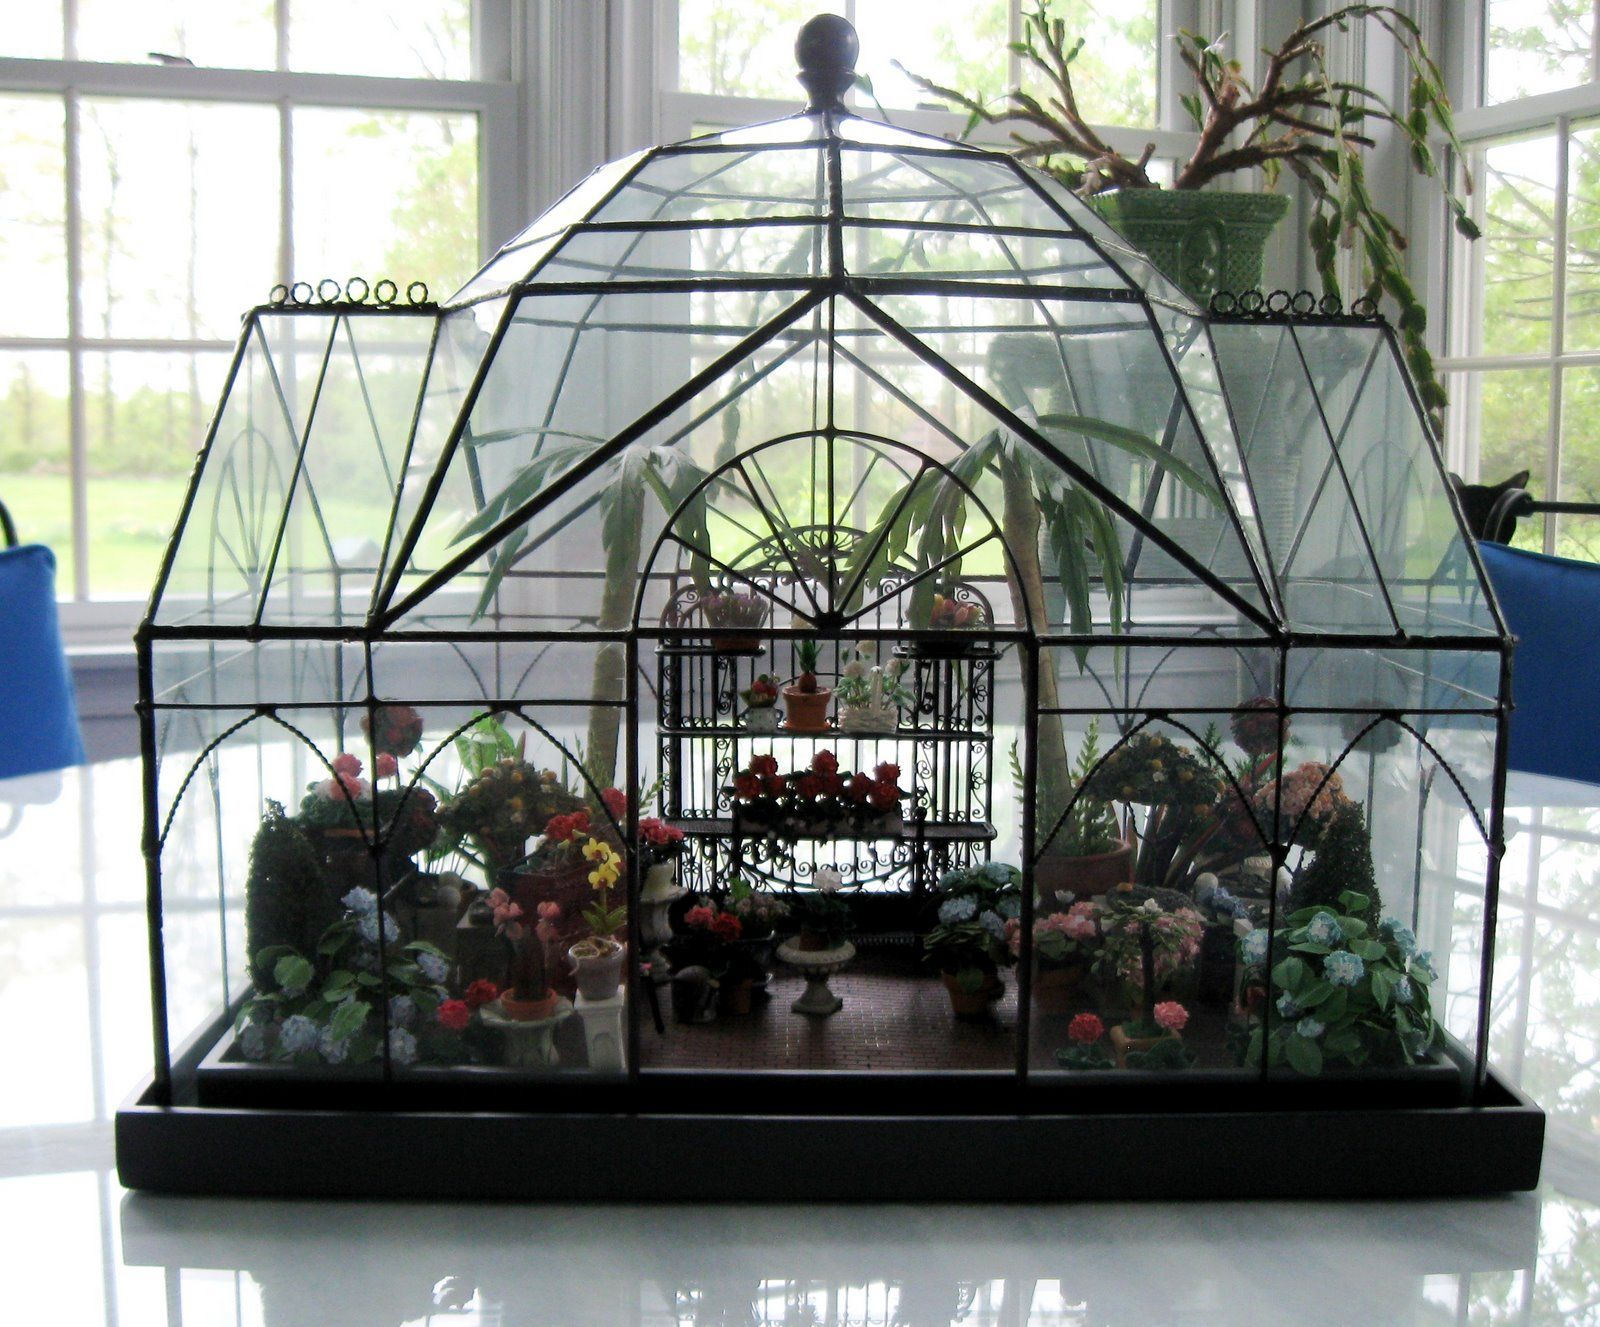 Mini conservatory by smith and hawken terrarium miniature Smith and hawken